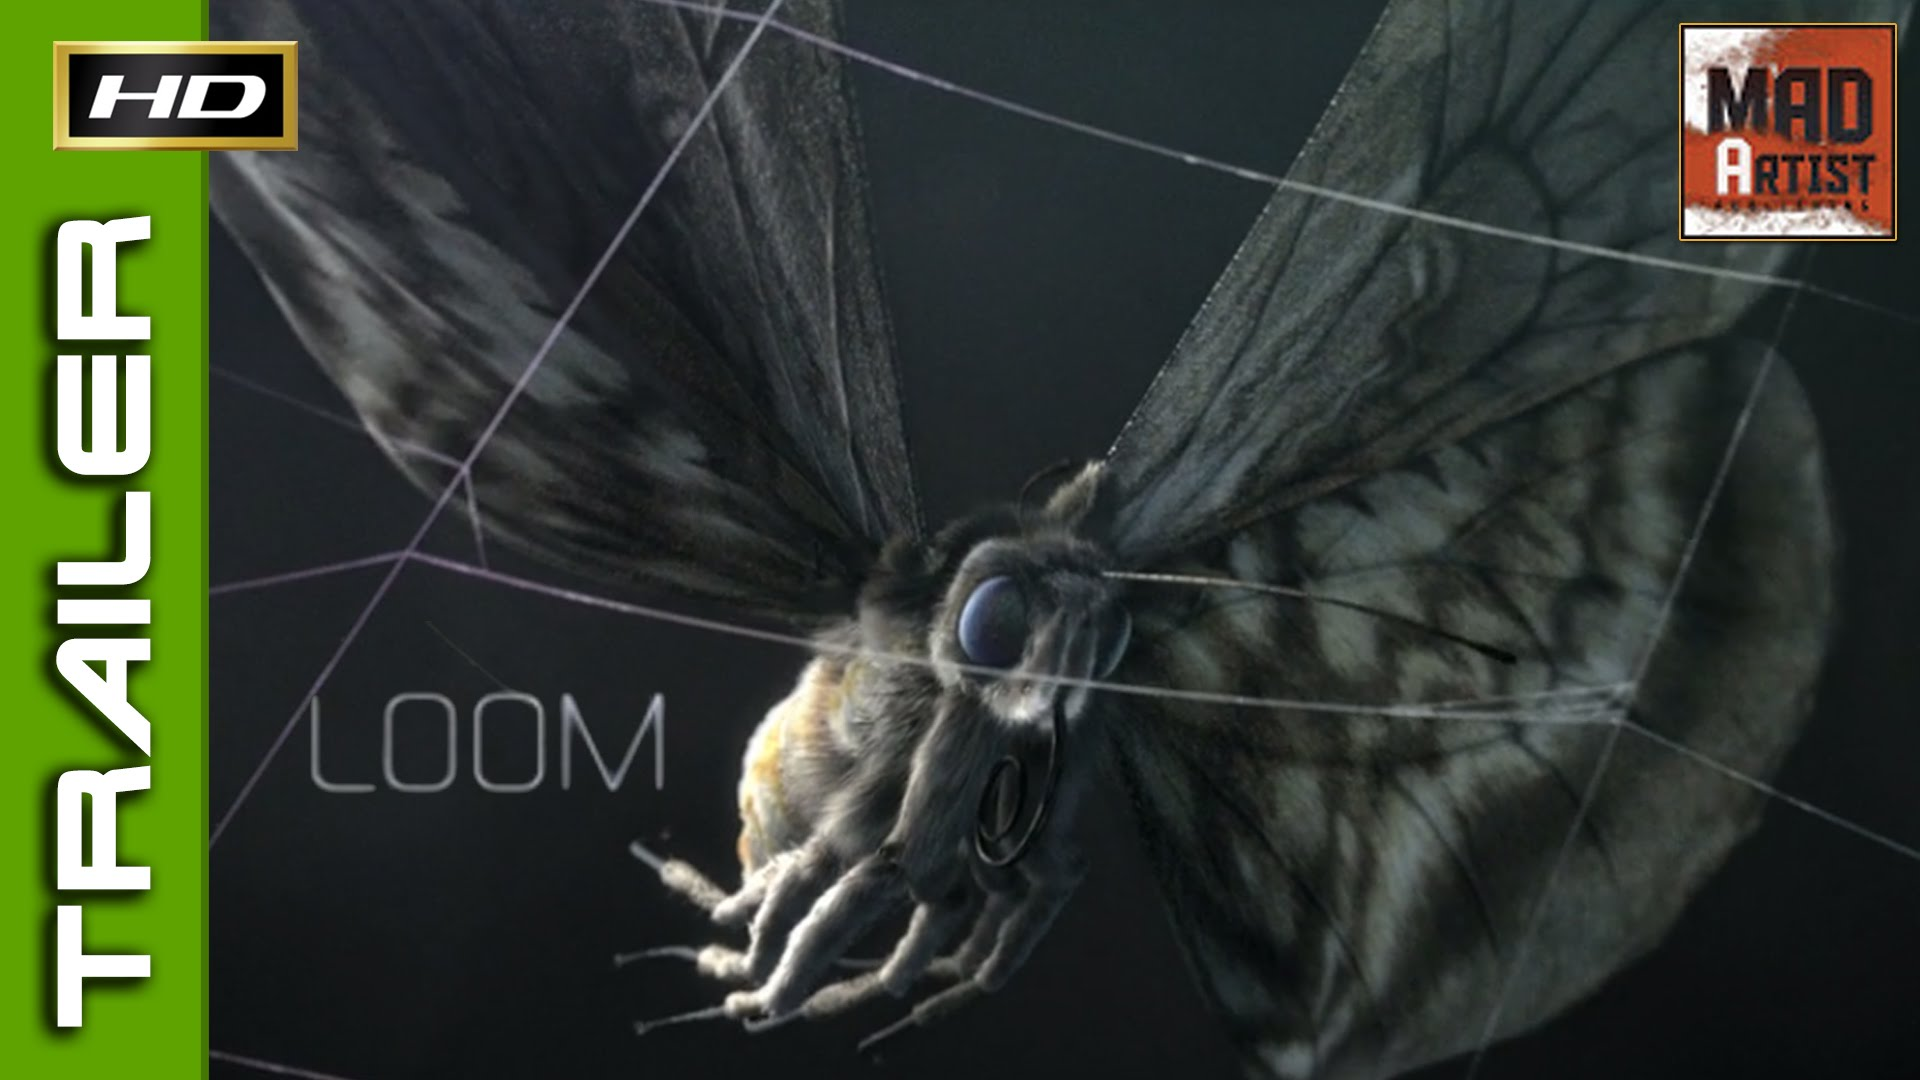 Loom (Trailer) | Story about a hunted Moth (Filmakademie)